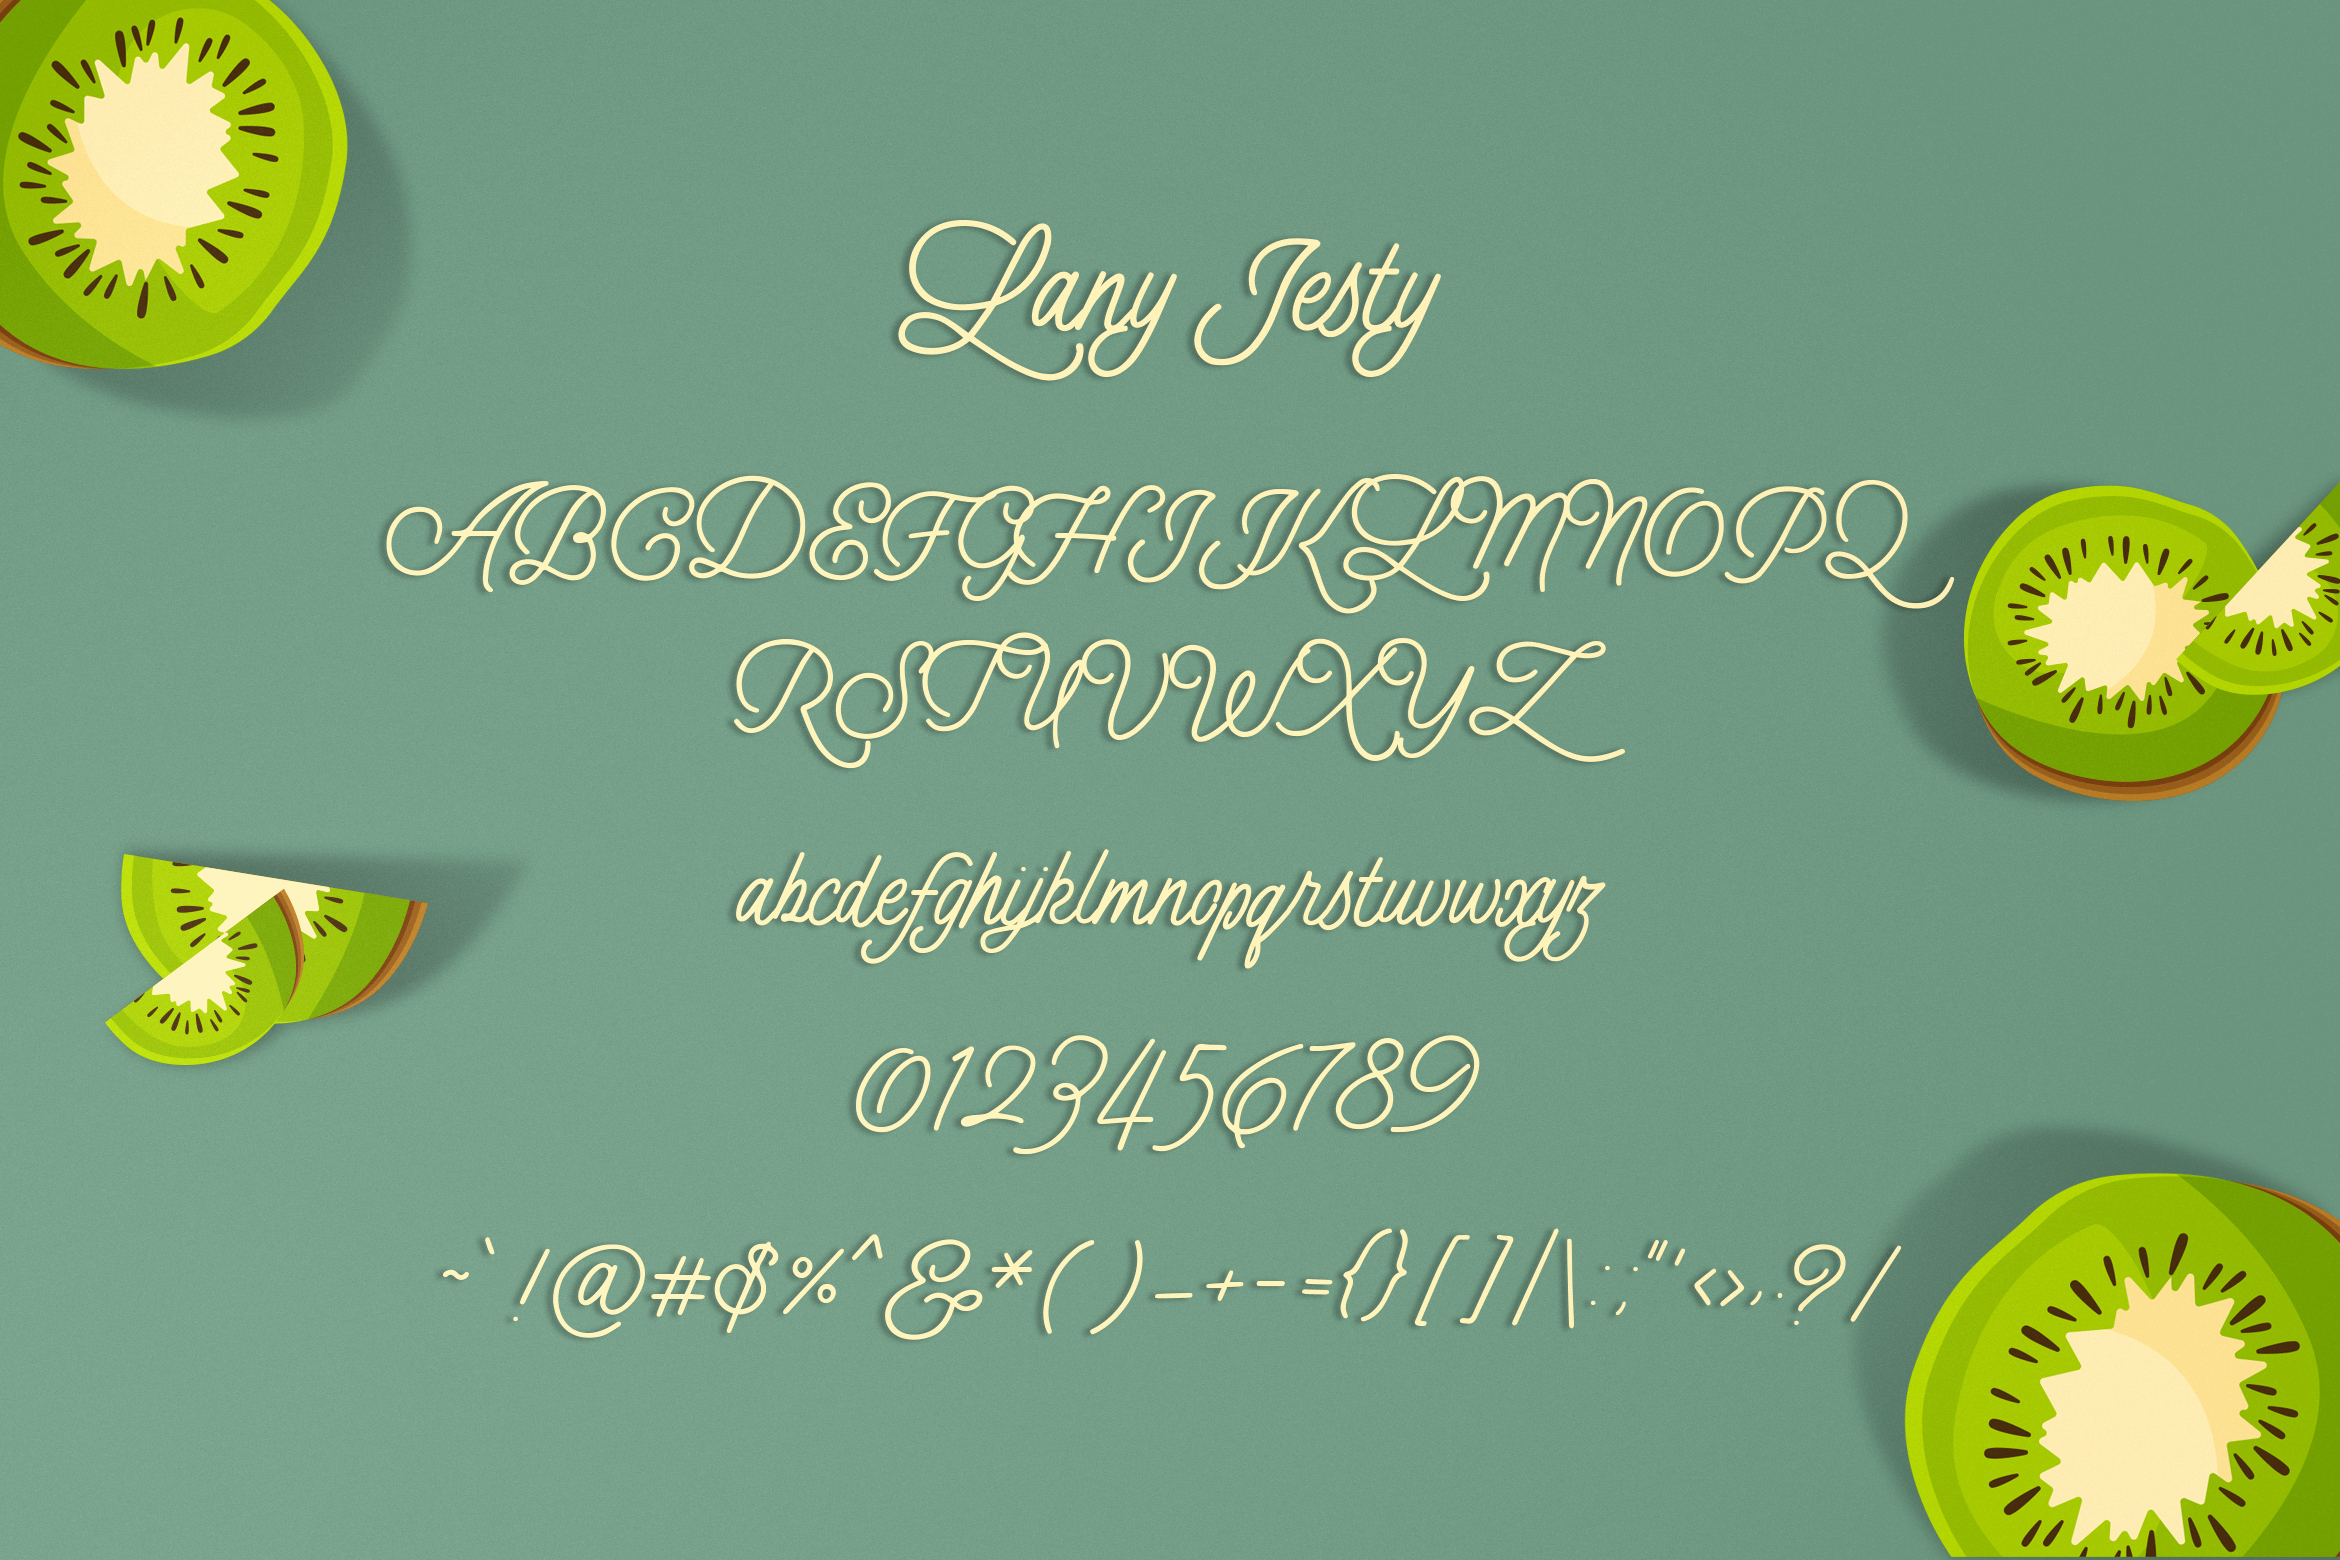 Lany Jesty Script example image 6